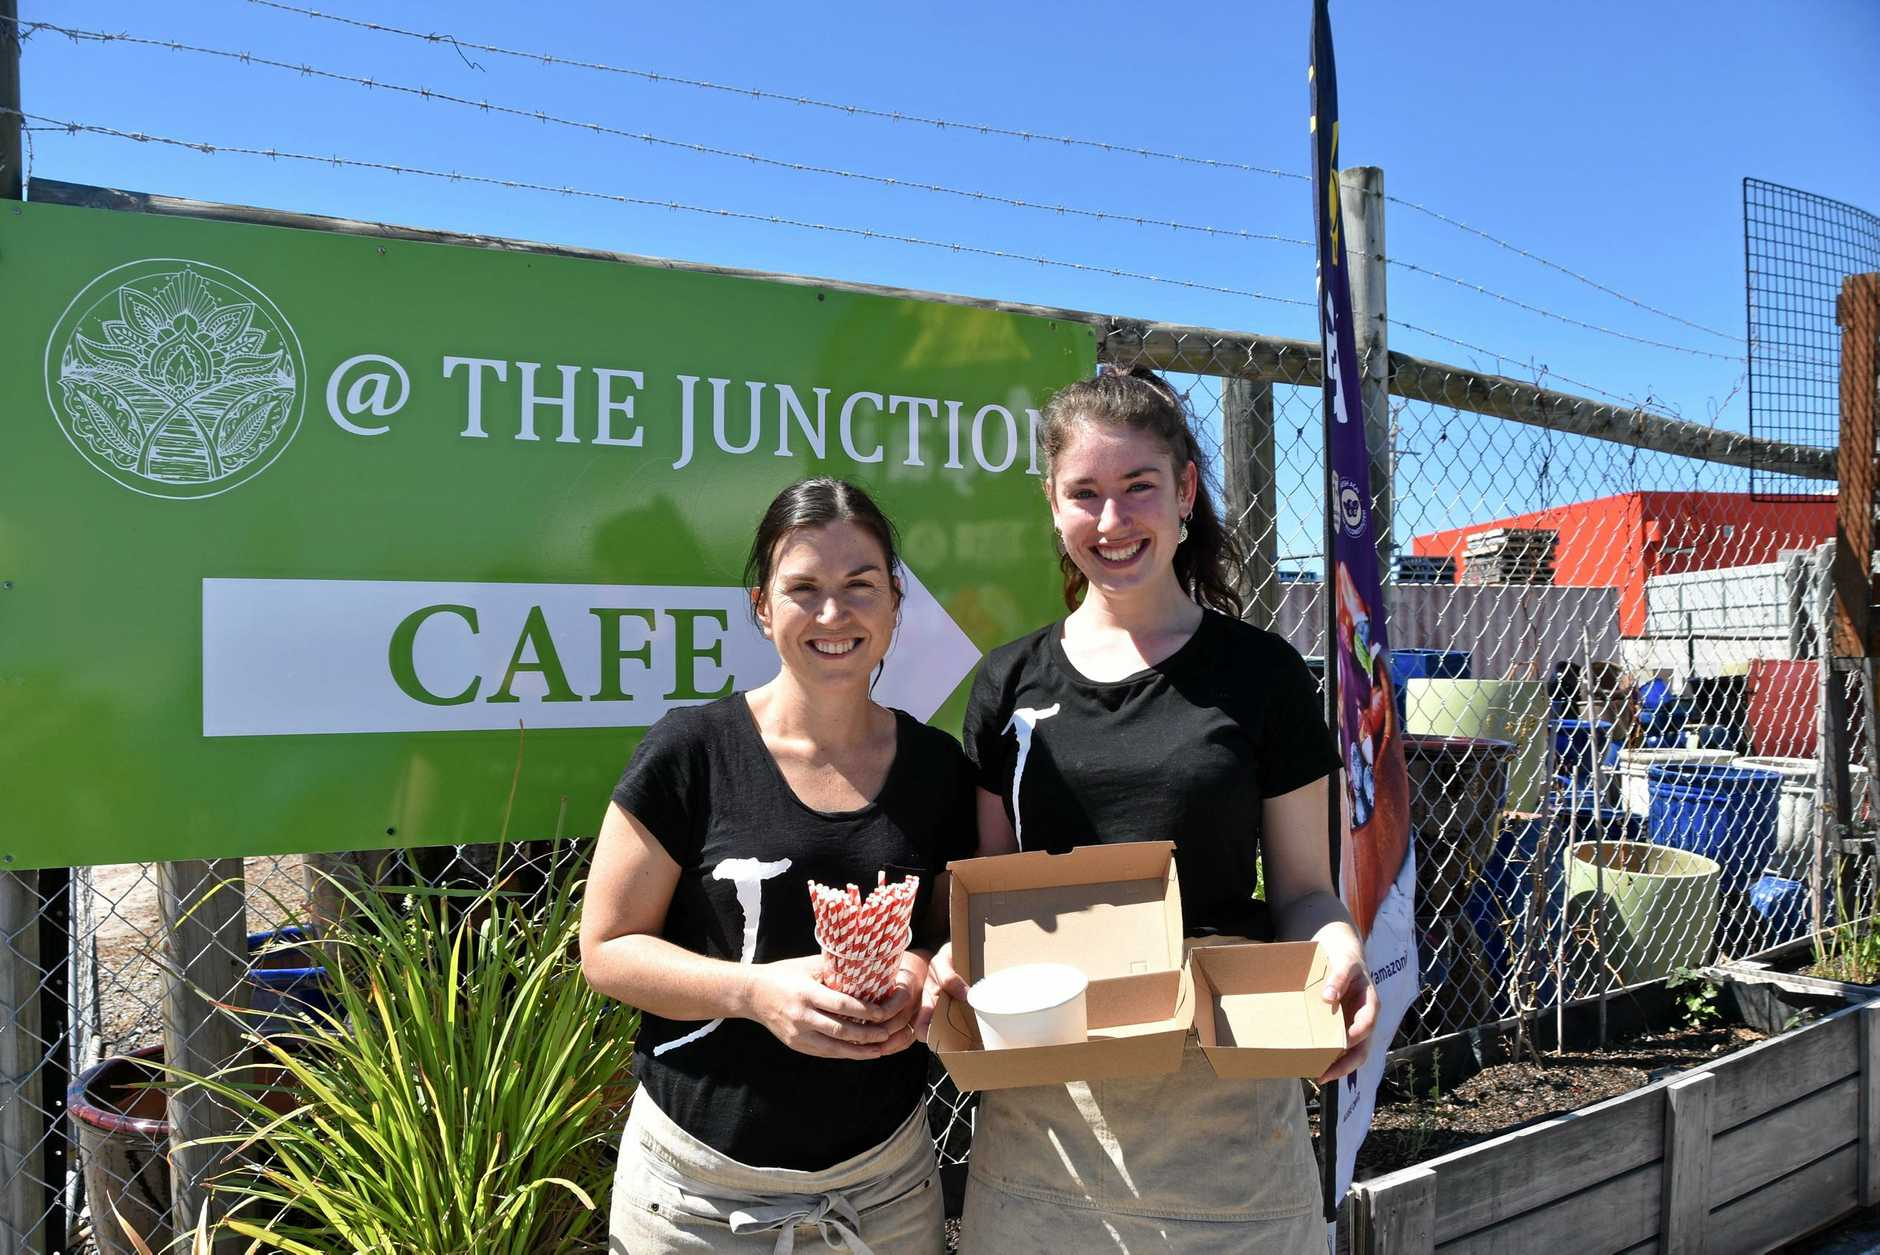 NATURE'S CARERS: The Junction Cafe owner Melissa Smart and food attendant Lanae Jarrett are going environmentally friendly with paper straws and recyclable food containers.